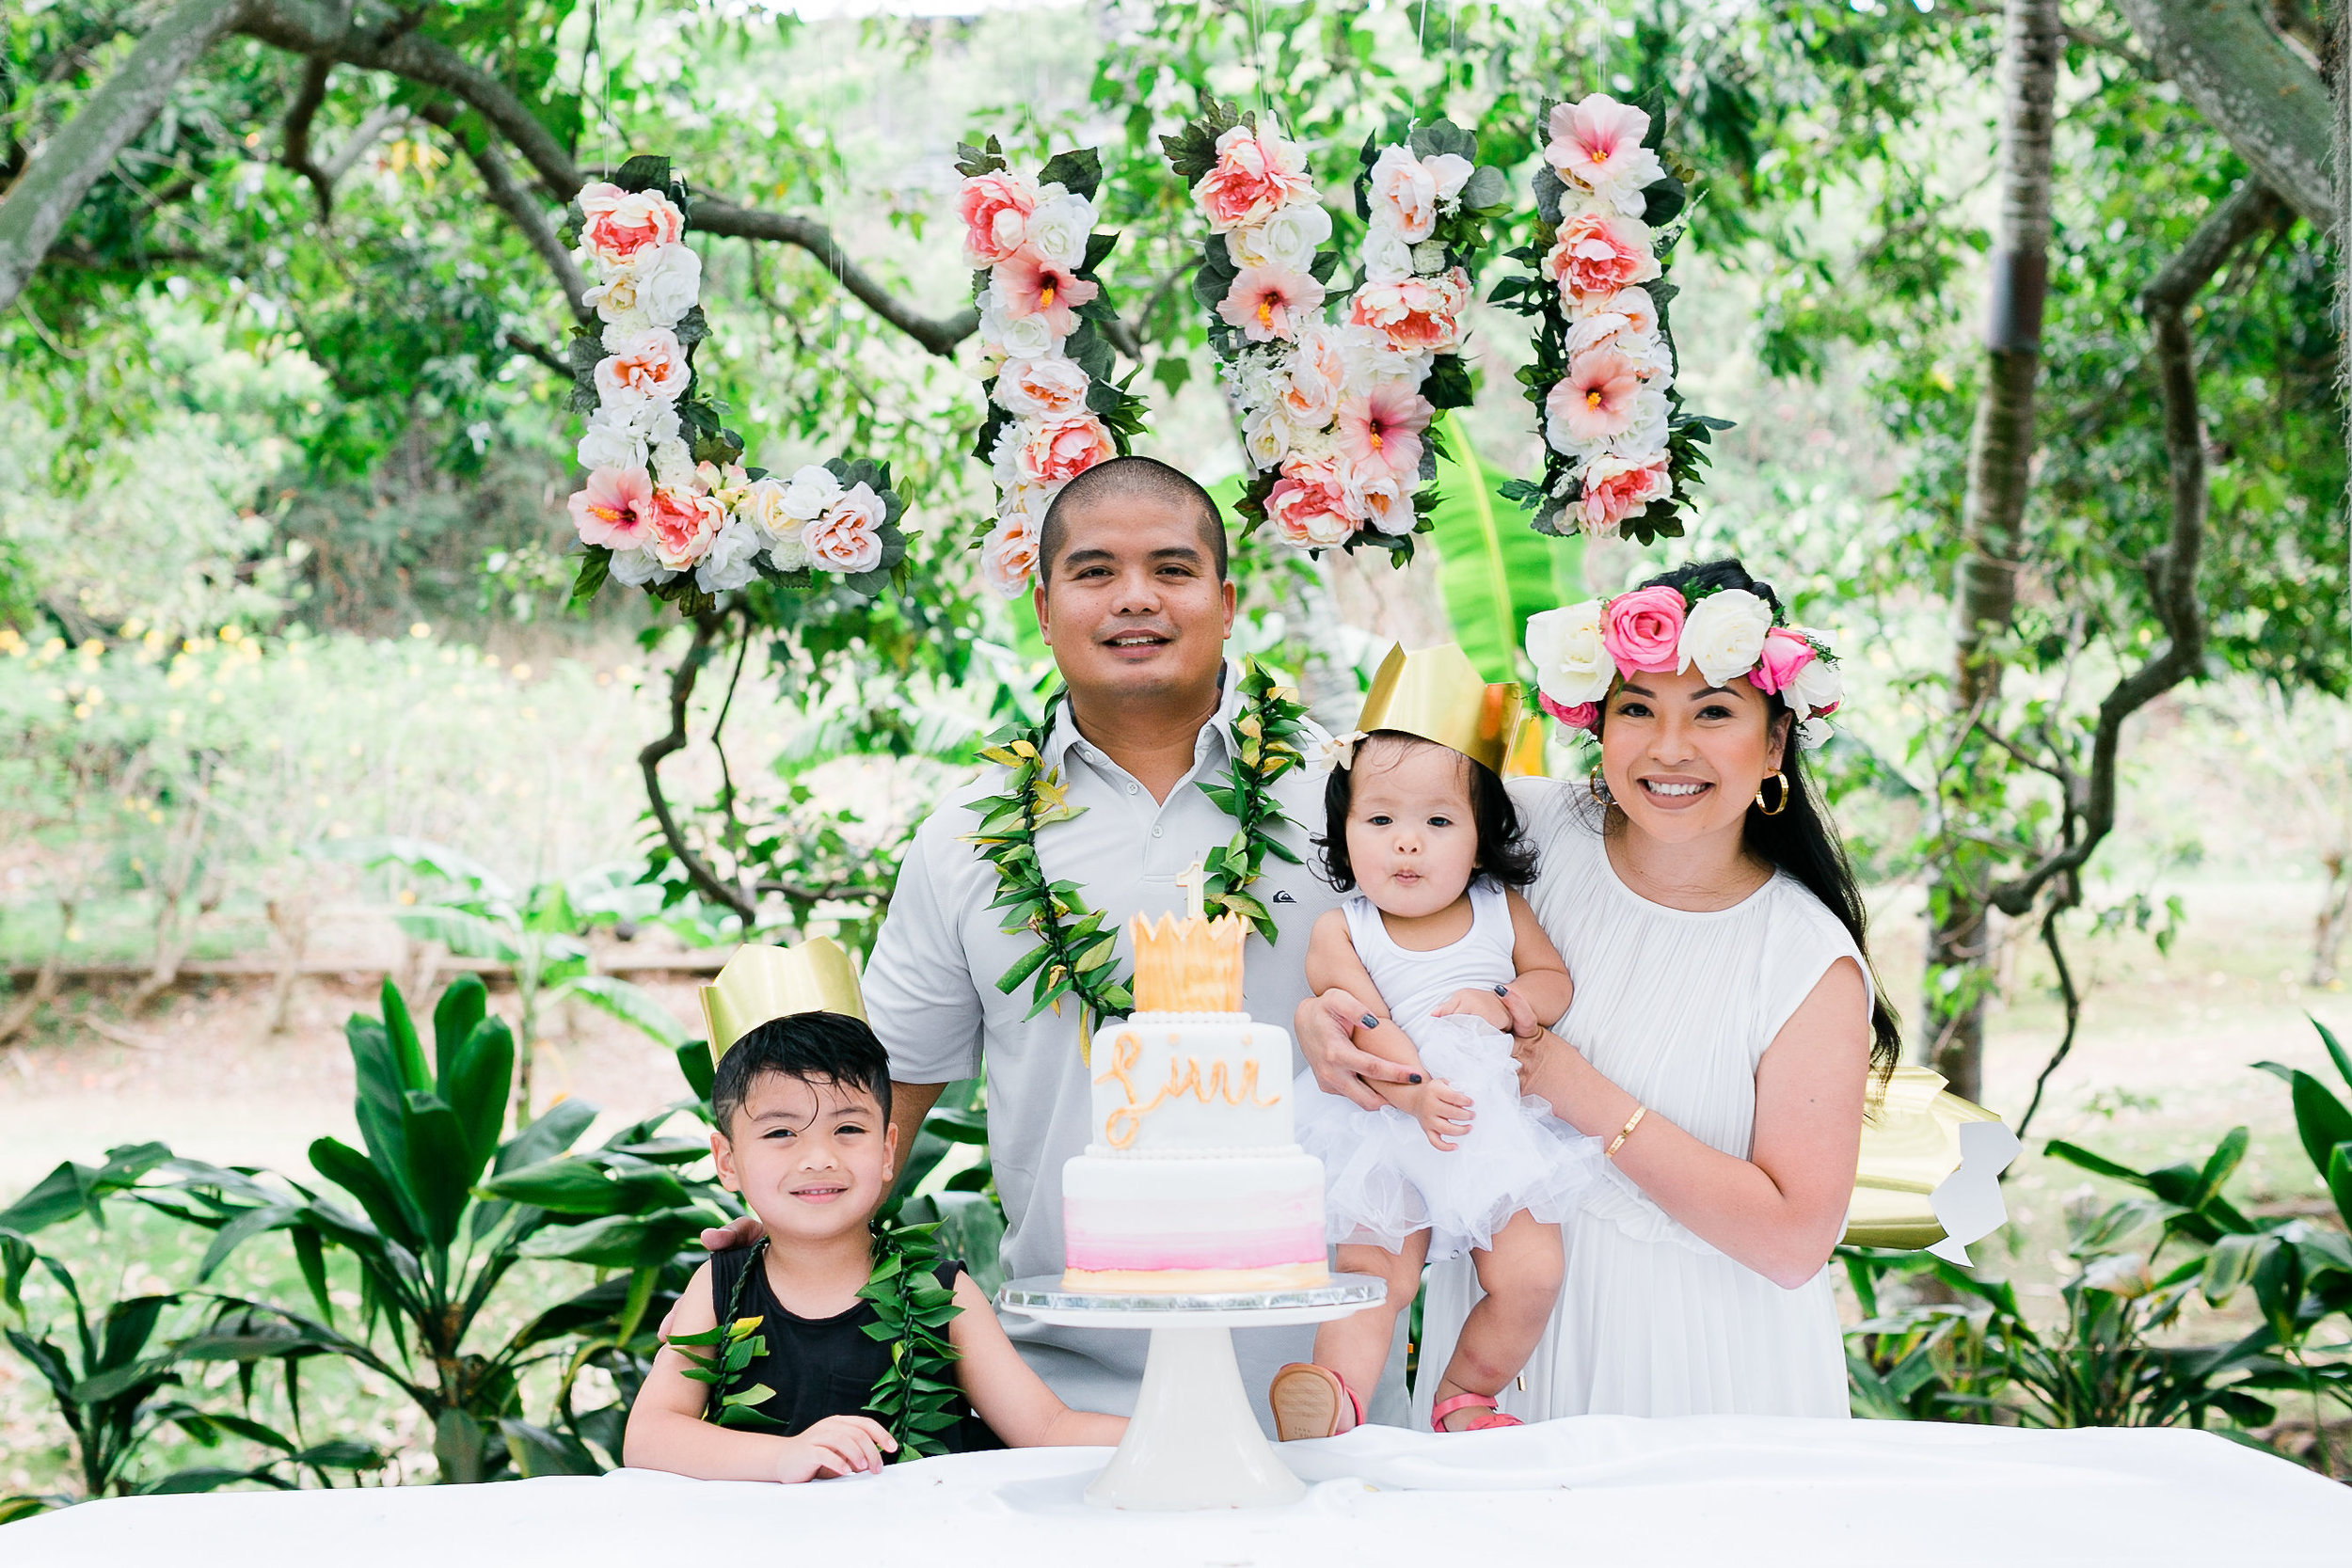 JamesRamosPhotography-LiviGrace_1stBirthday-135.jpg